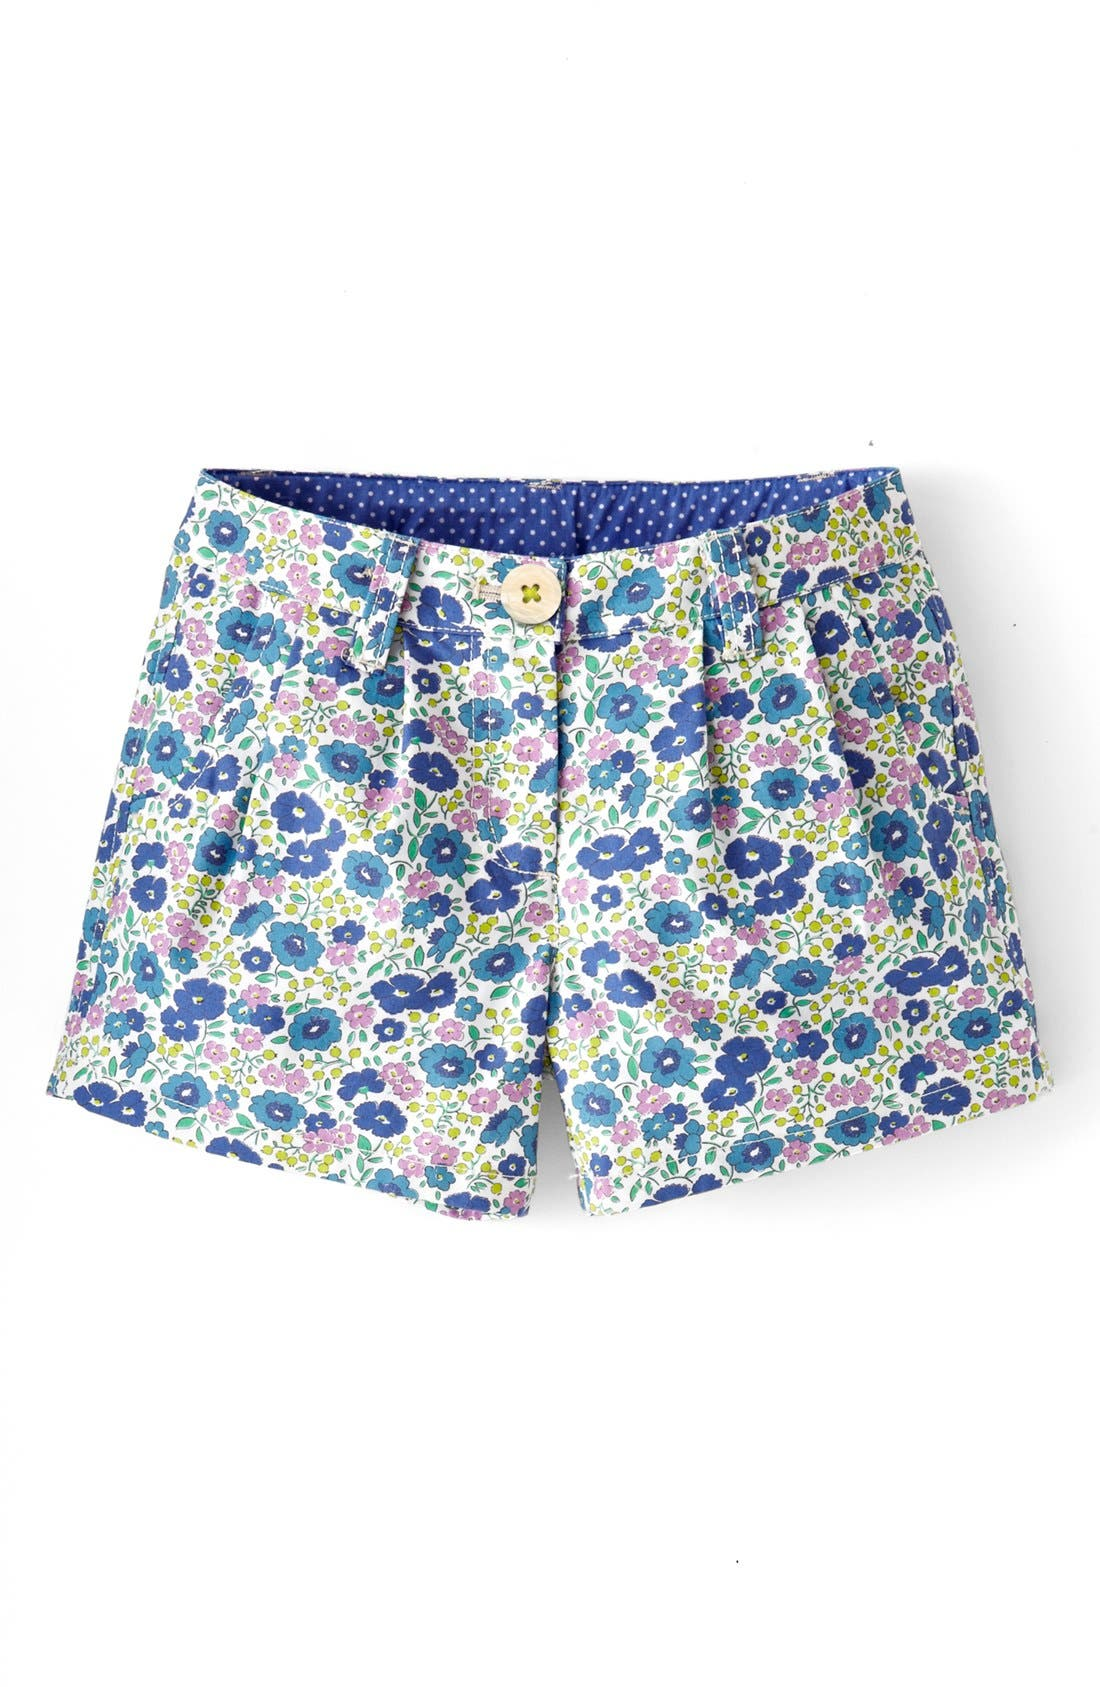 Alternate Image 1 Selected - Mini Boden 'Amalfi' Cotton Shorts (Little Girls & Big Girls)